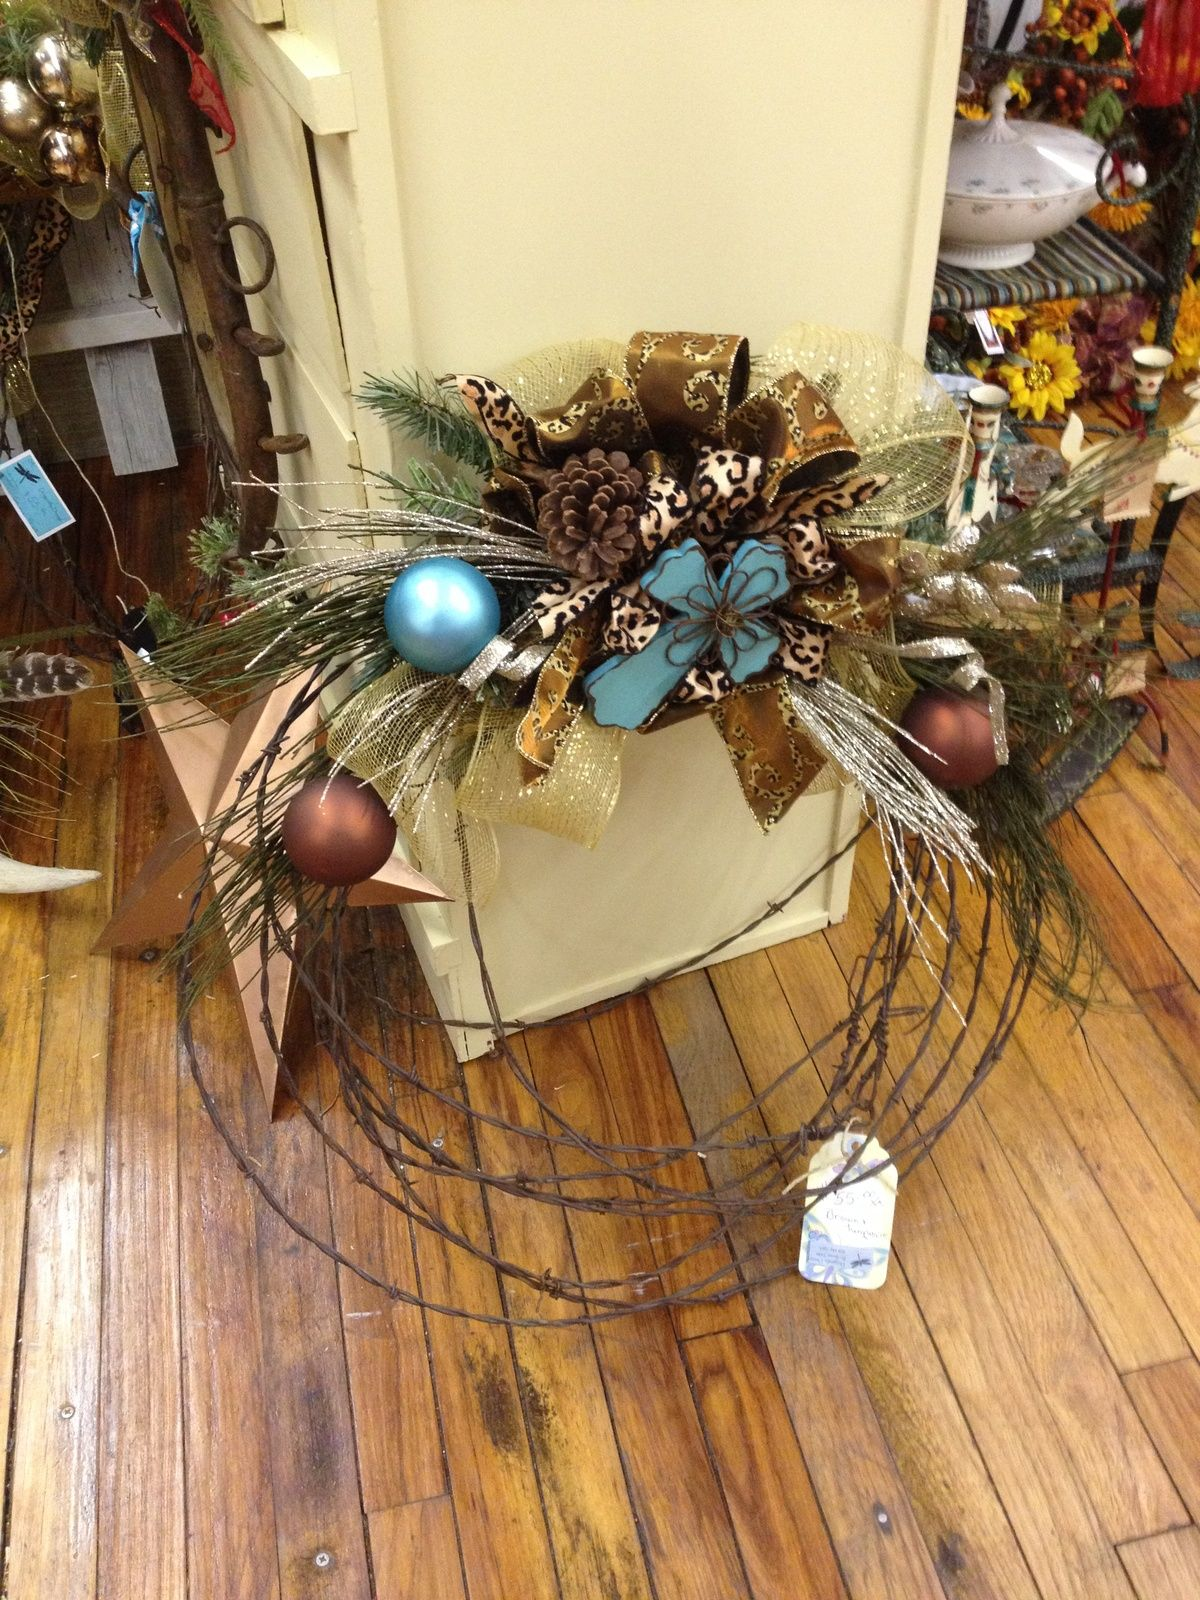 49796642b512594791852b0f2f3b40eb Jpg 1 200 1 600 Pixels Barbed Wire Wreath Christmas Wreaths Wreaths